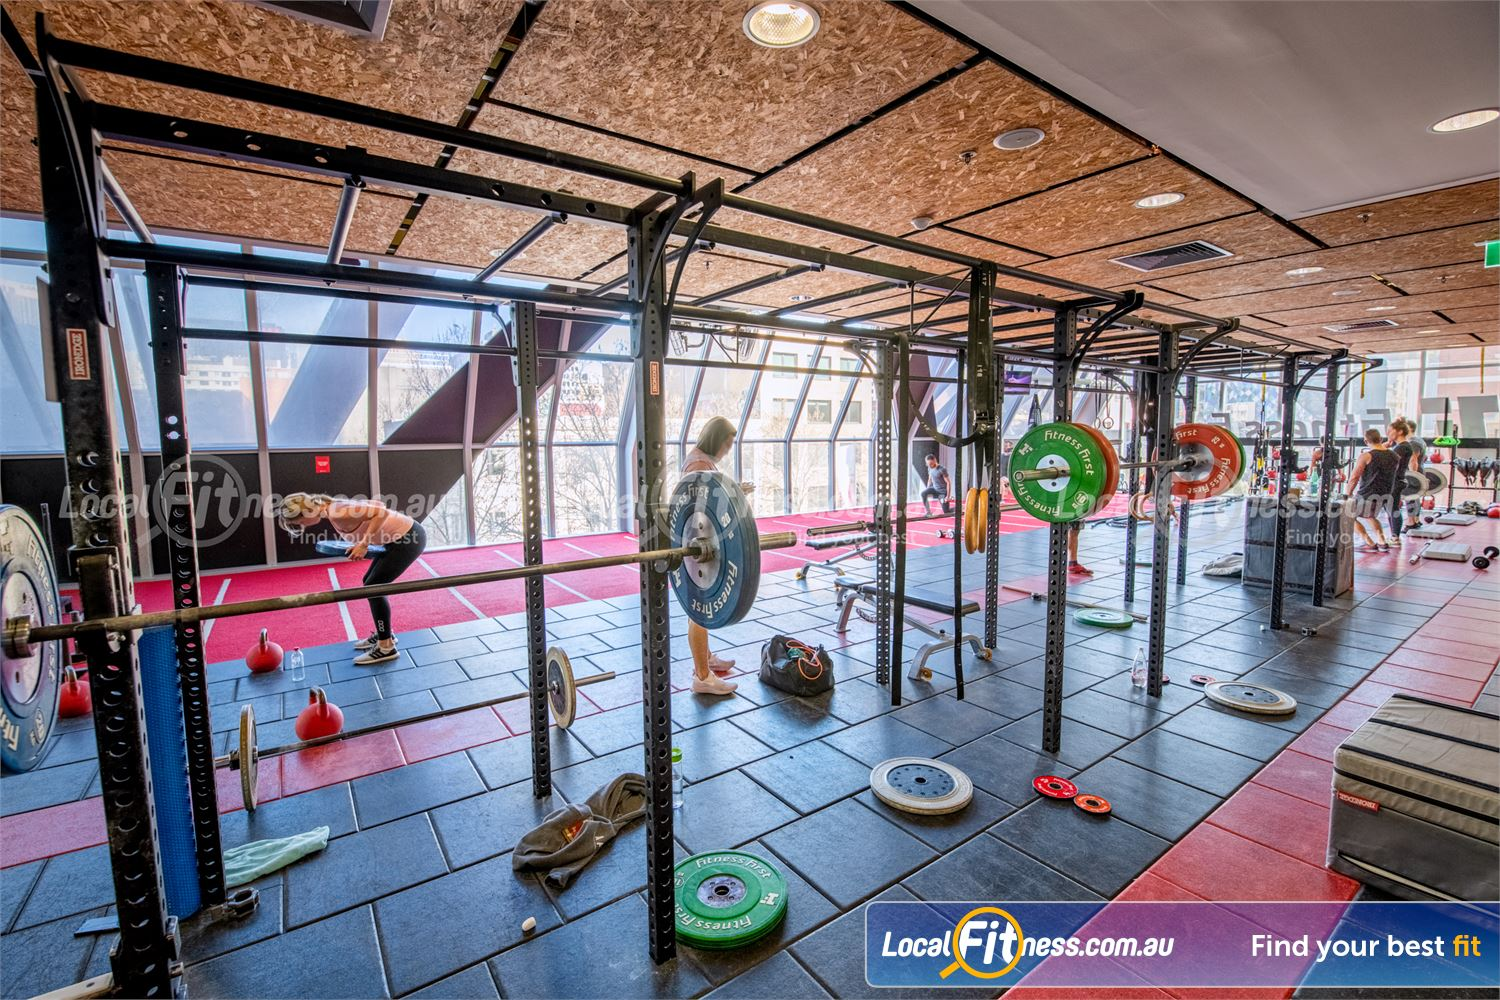 Fitness First QV Platinum Near East Melbourne Our strength matrix is perfect for functional training.